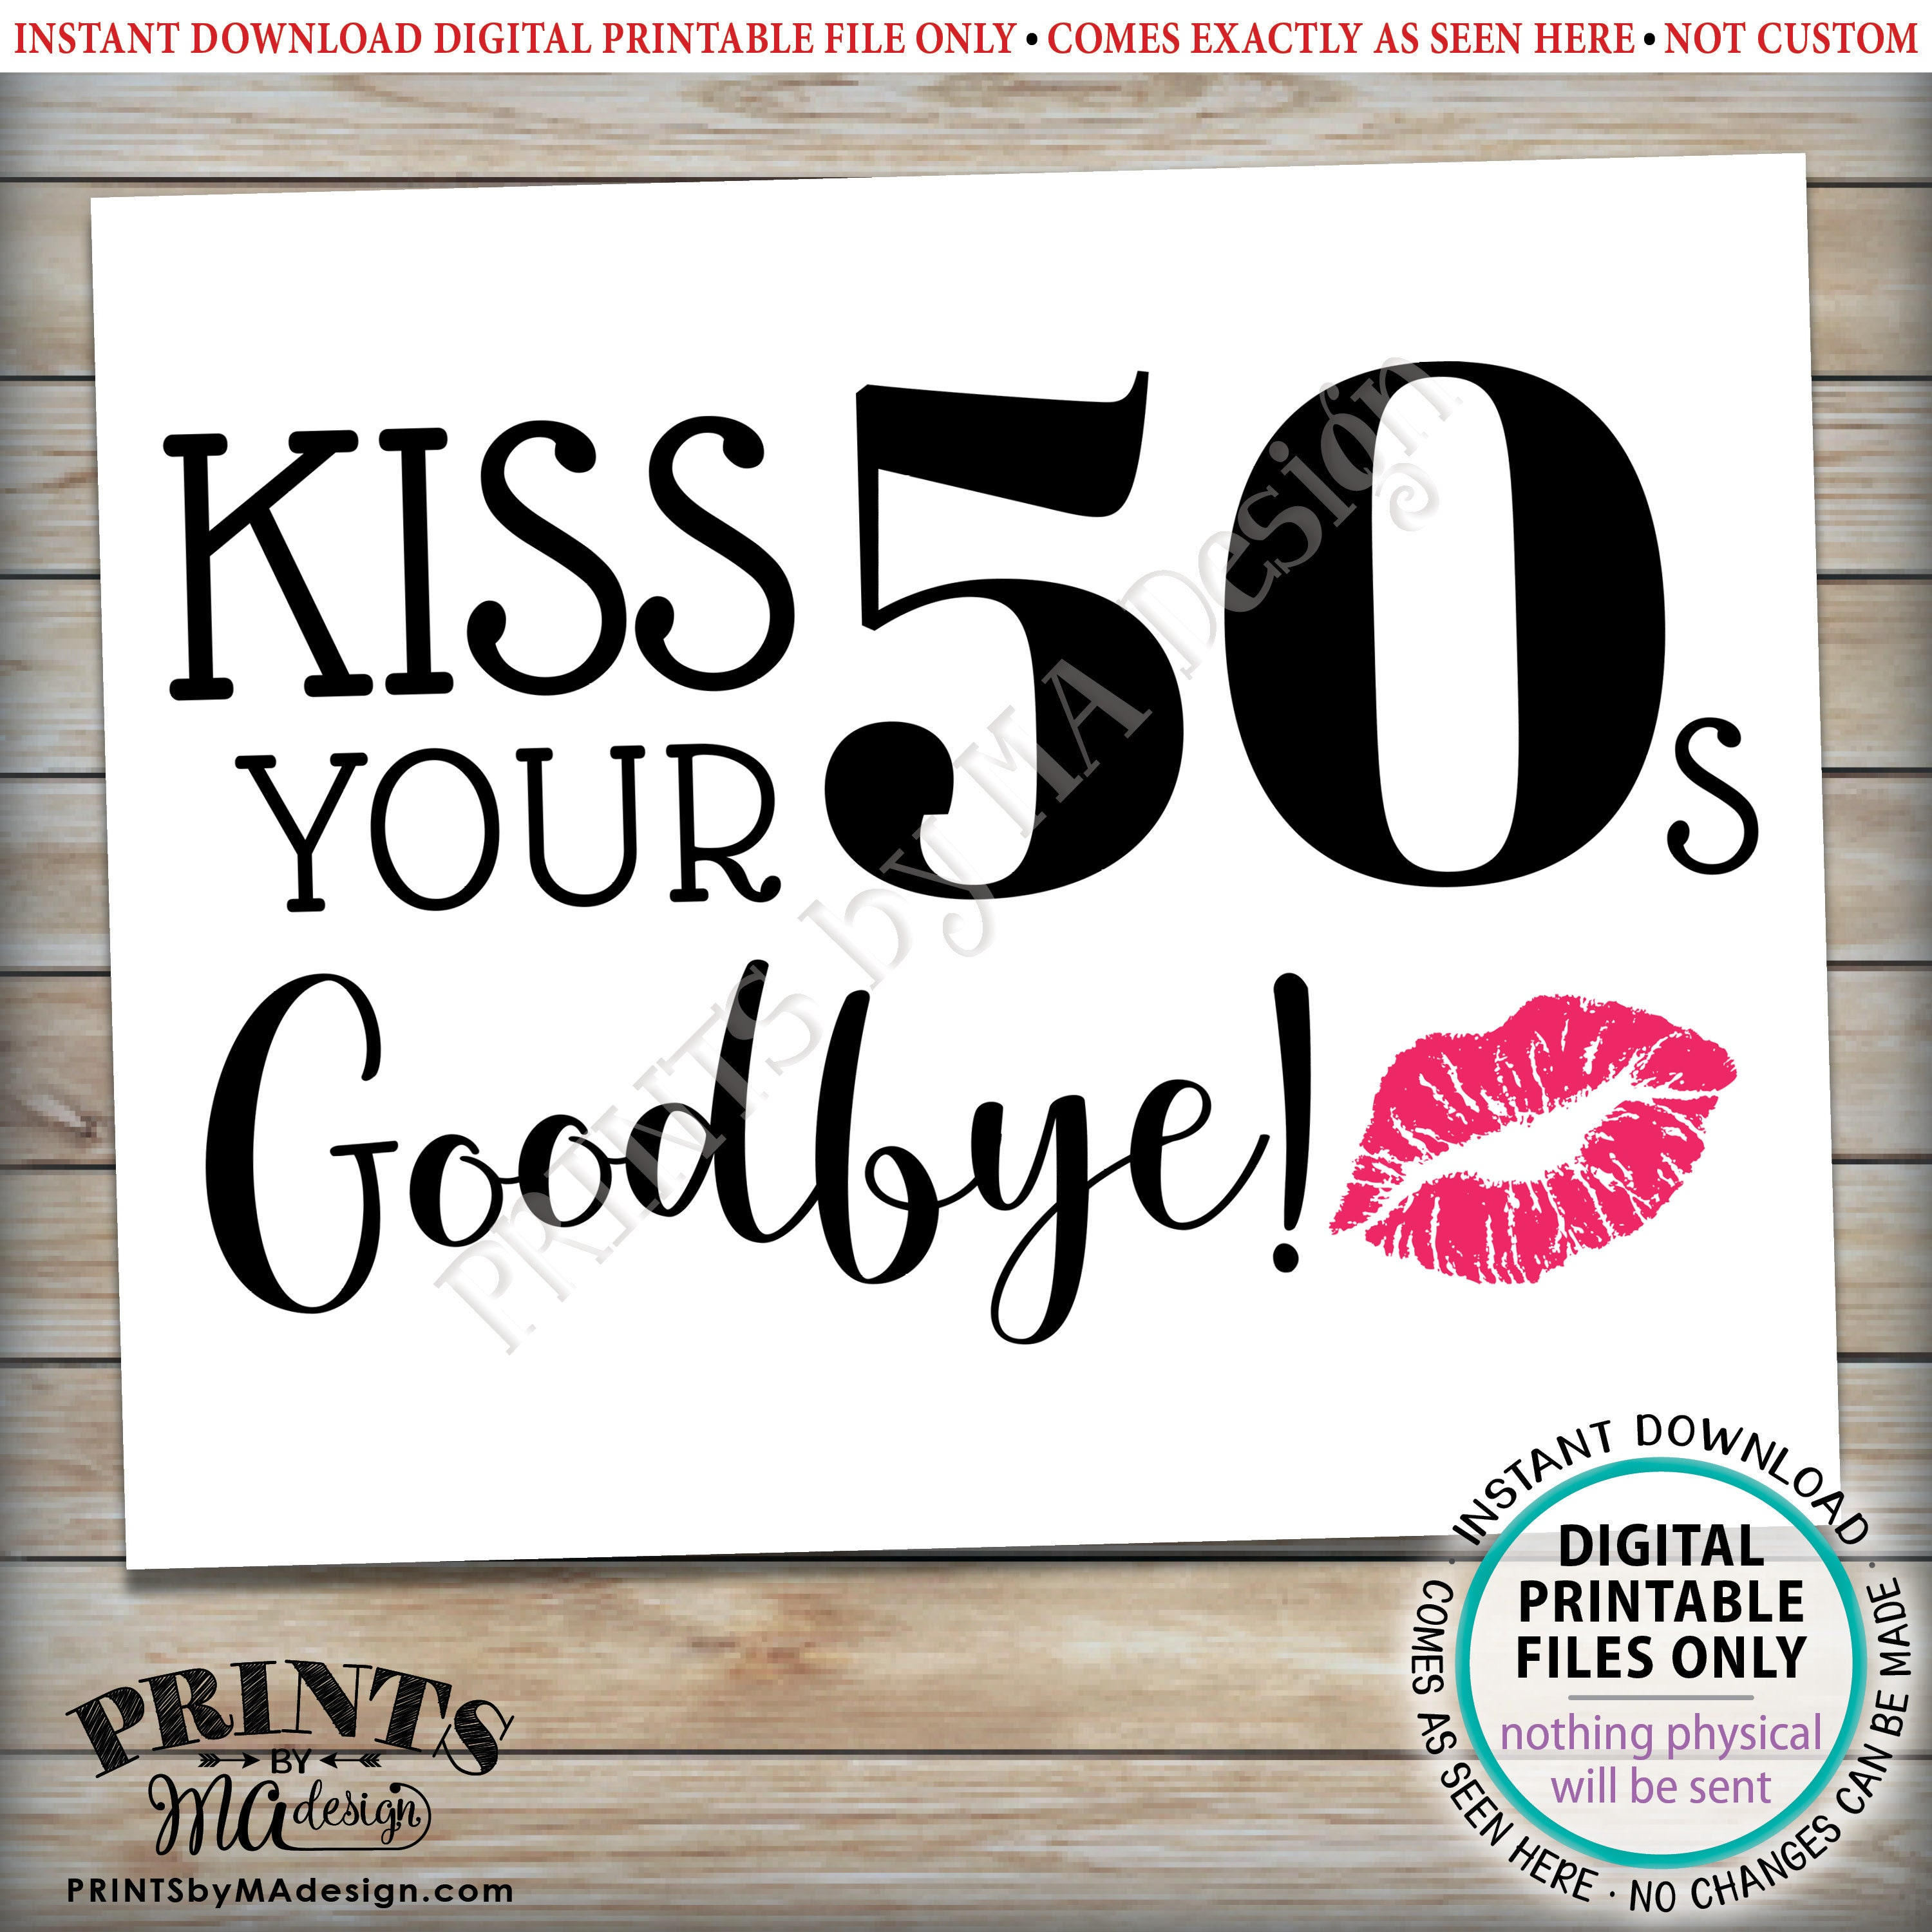 60th Birthday Sign Kiss Your 50s Goodbye Funny 60th Candy Bar Sign Sixtieth Bday Party Decor Printable 8x10 16x20 Sign